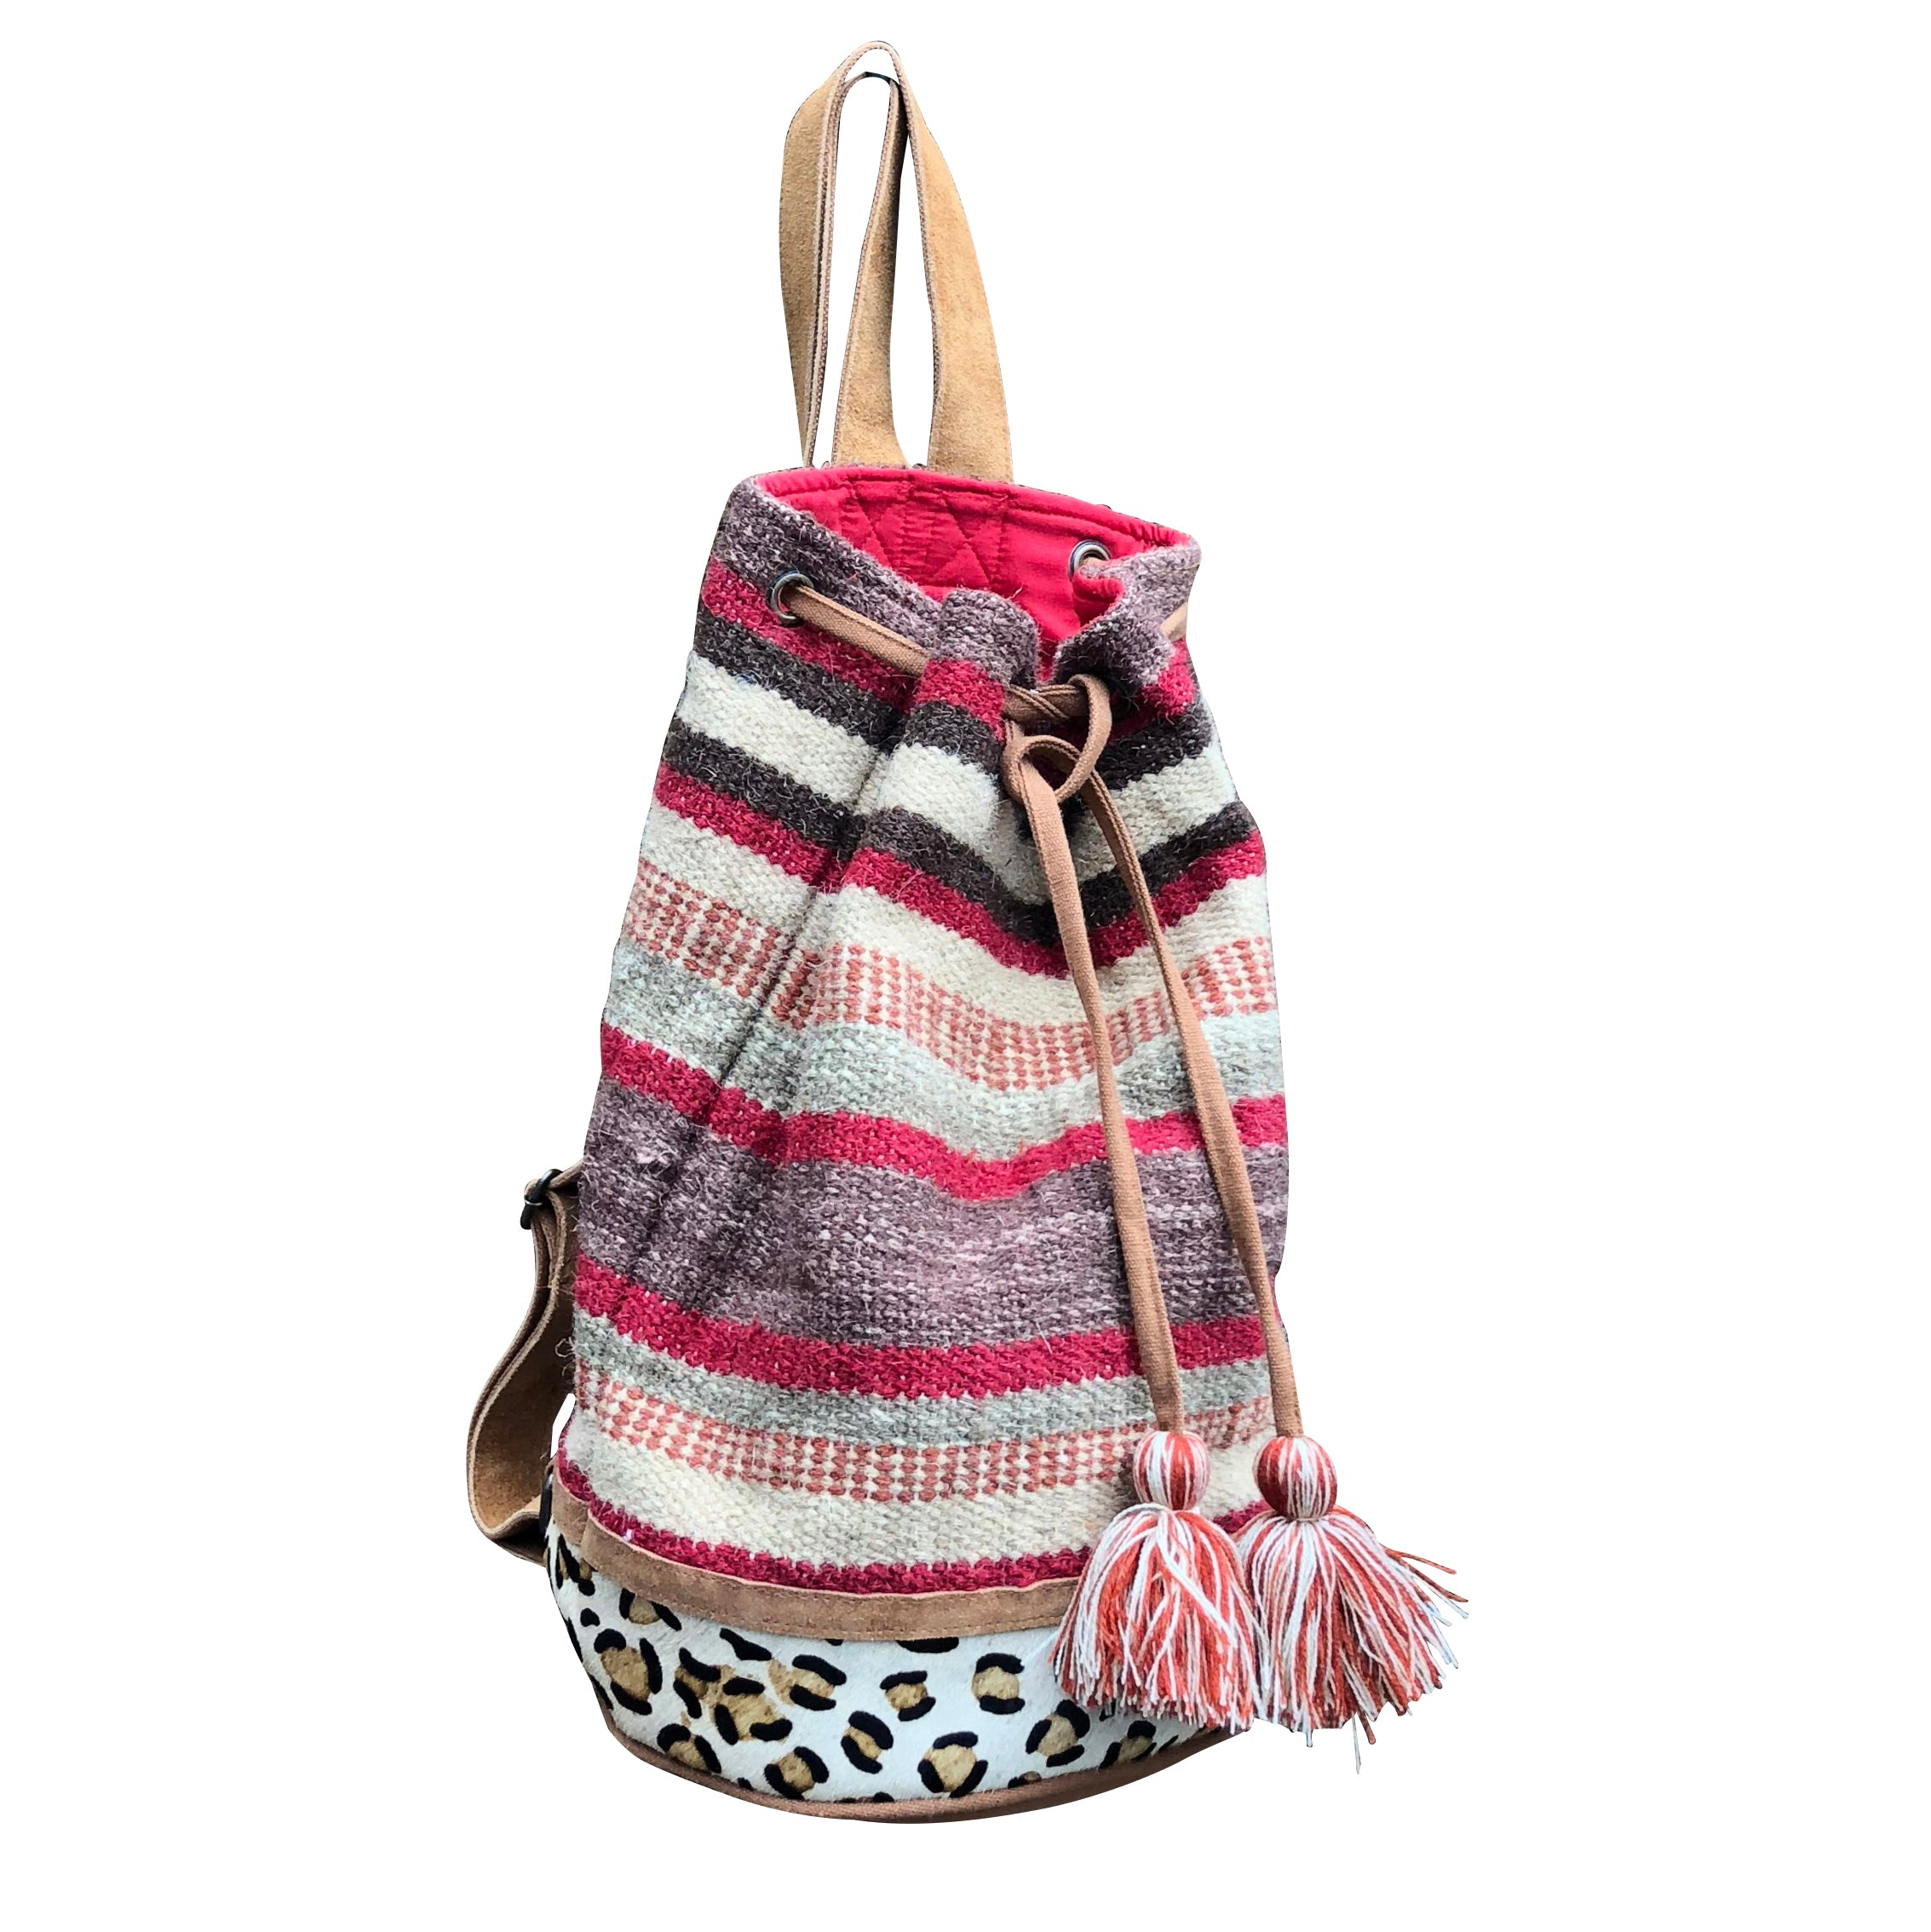 Chloe & Lex - Autumn Stripes Bucket Tote (Backpack)